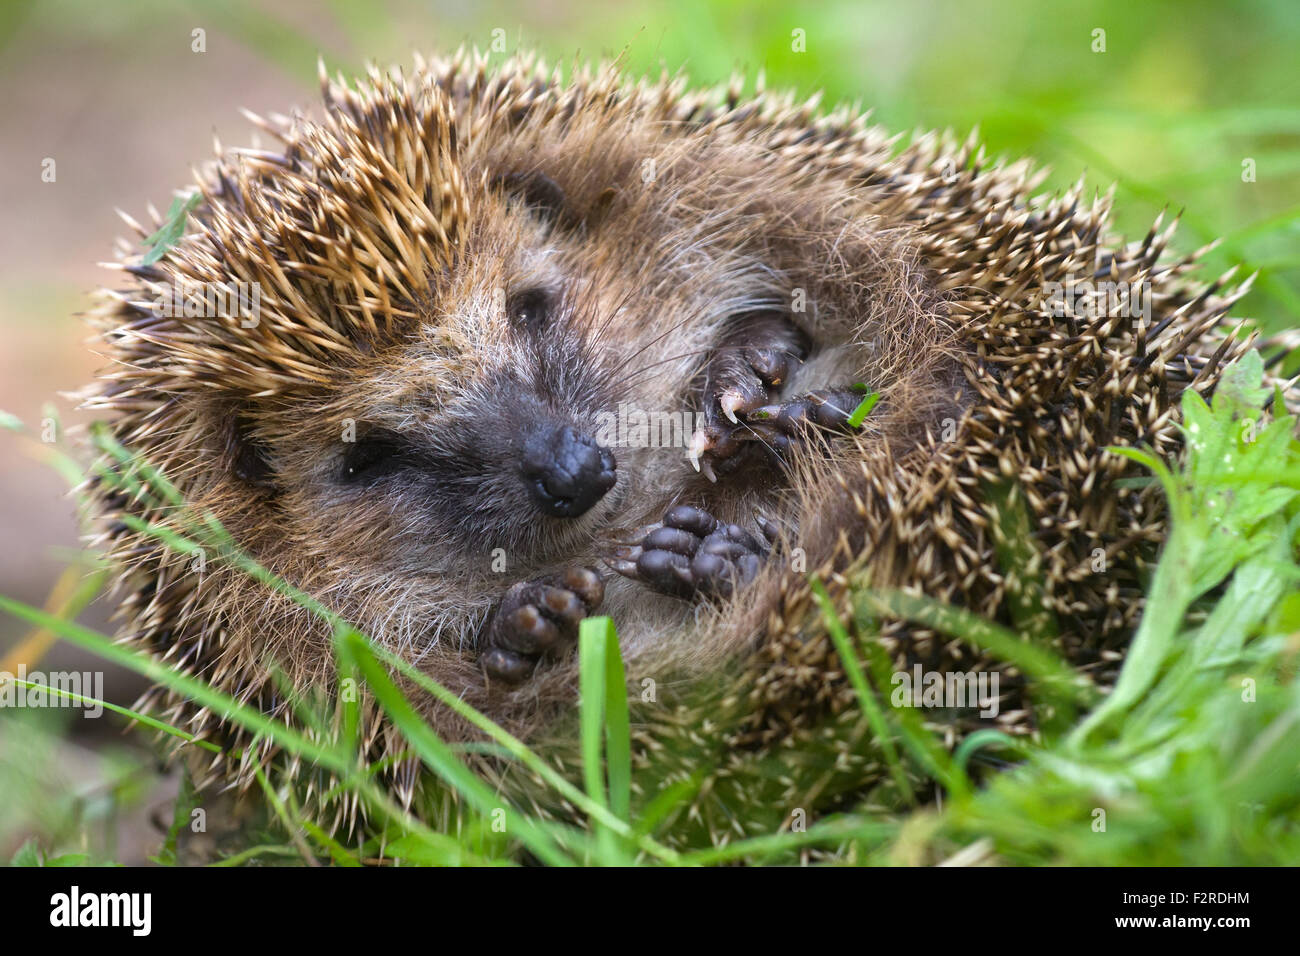 forest hedgehog on a grass curled up - Stock Image